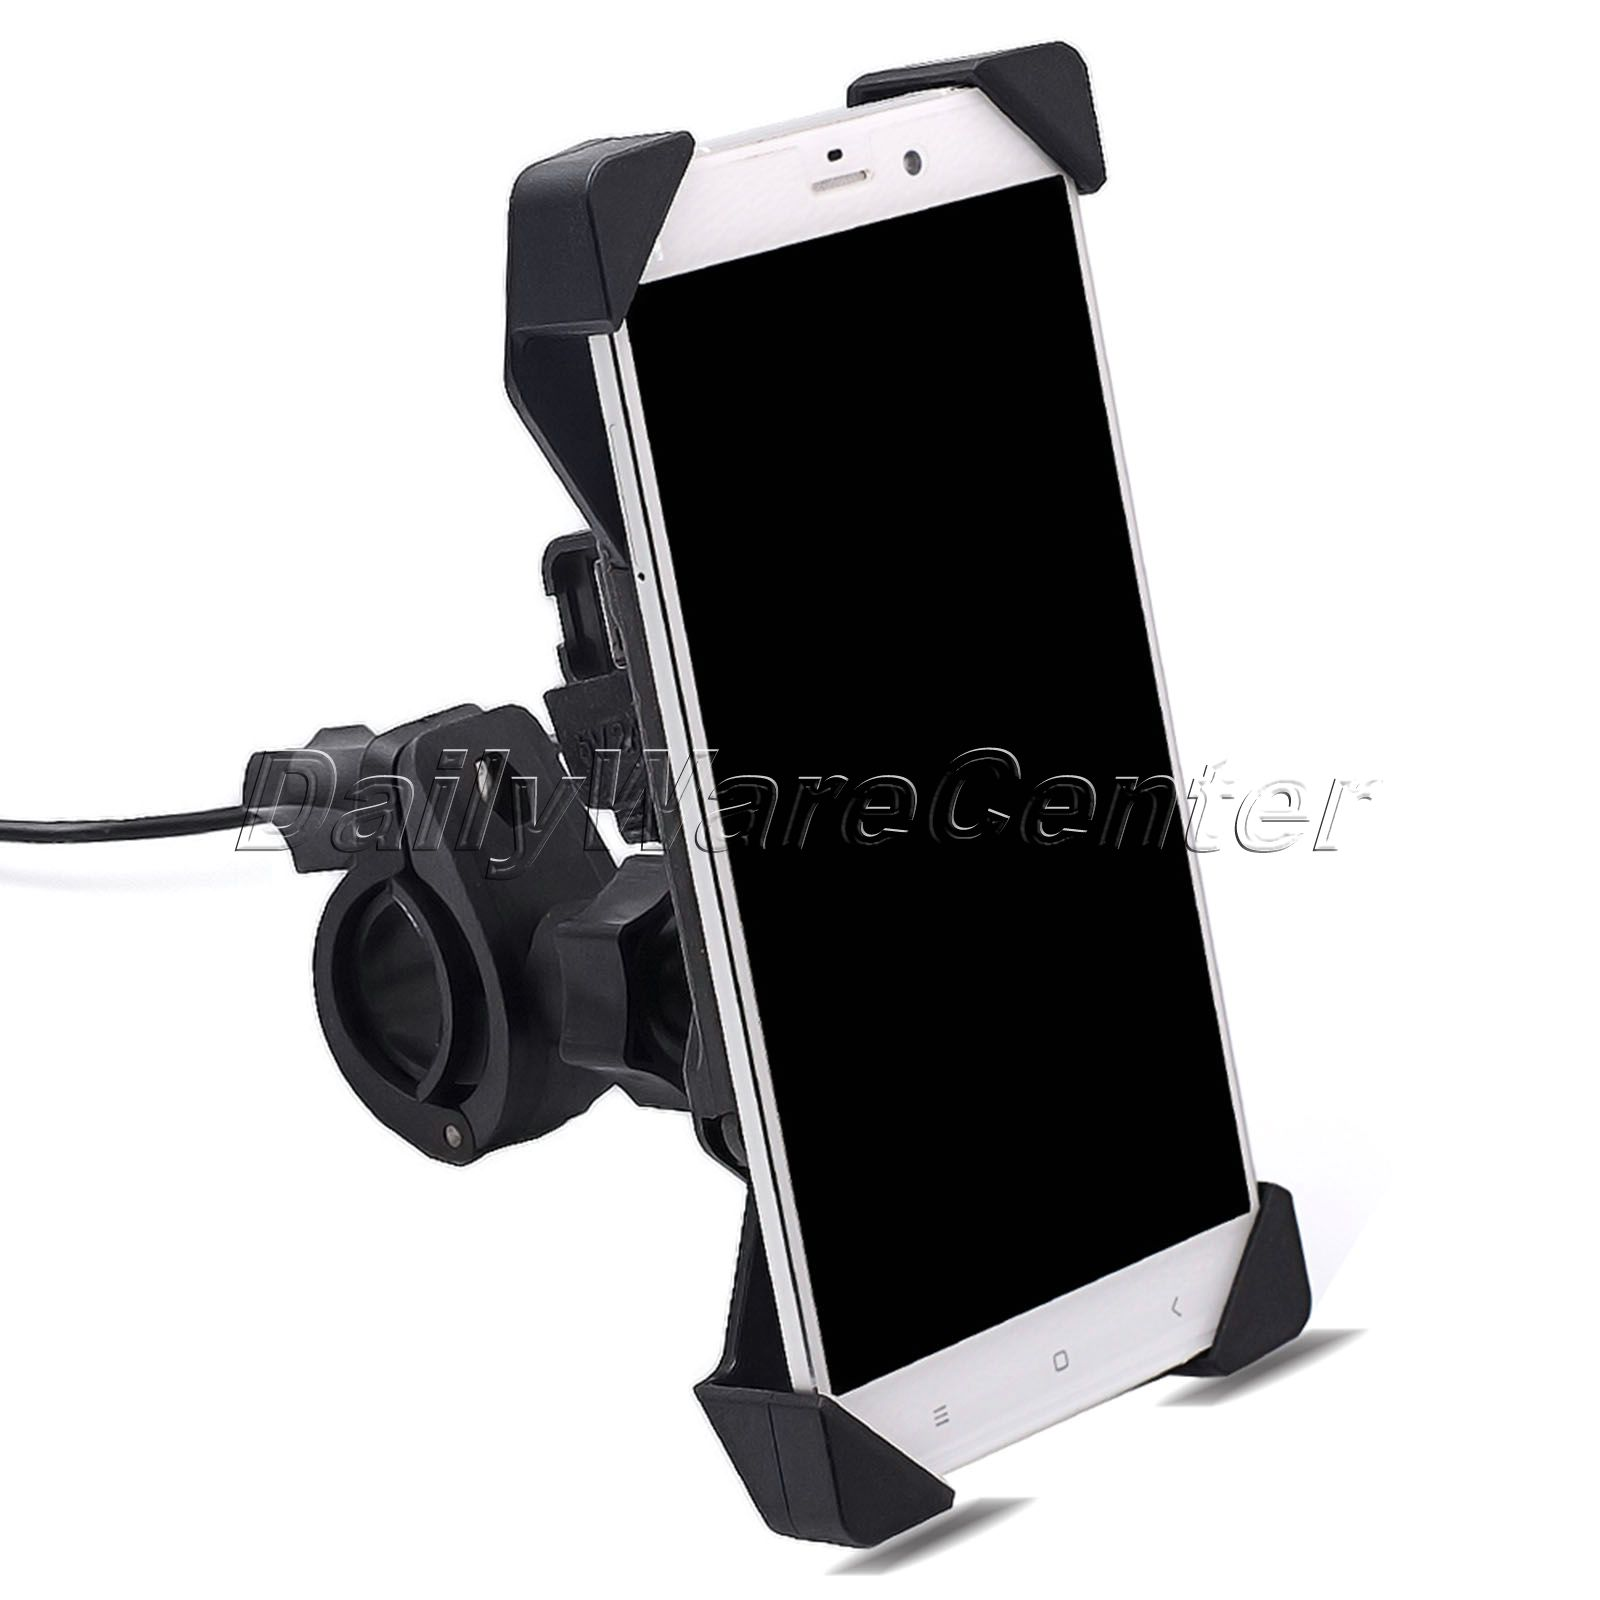 Universal Motorcycle MTB Motorbike Handlebar Mount Mobile Cell Phone Holder with USB Charger Retractable Phone Holder Grip